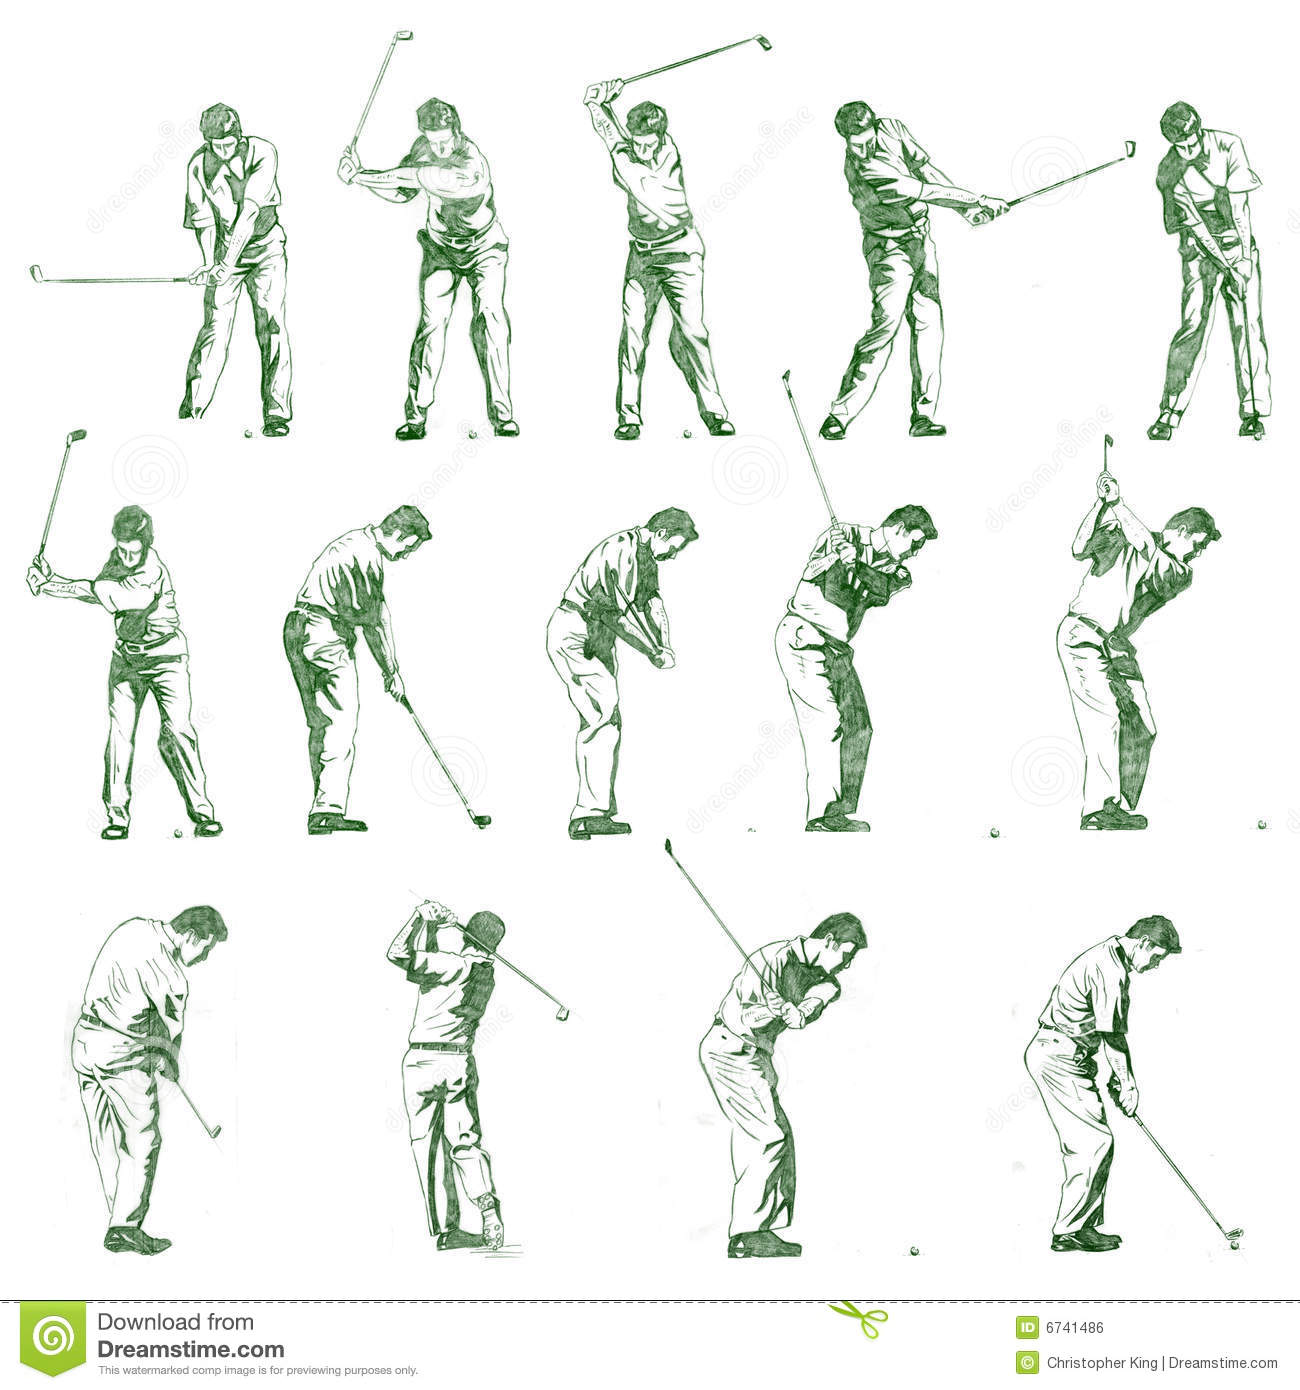 Golf Swing Stages Hand Drawn Illustration Royalty Free Stock Image ...